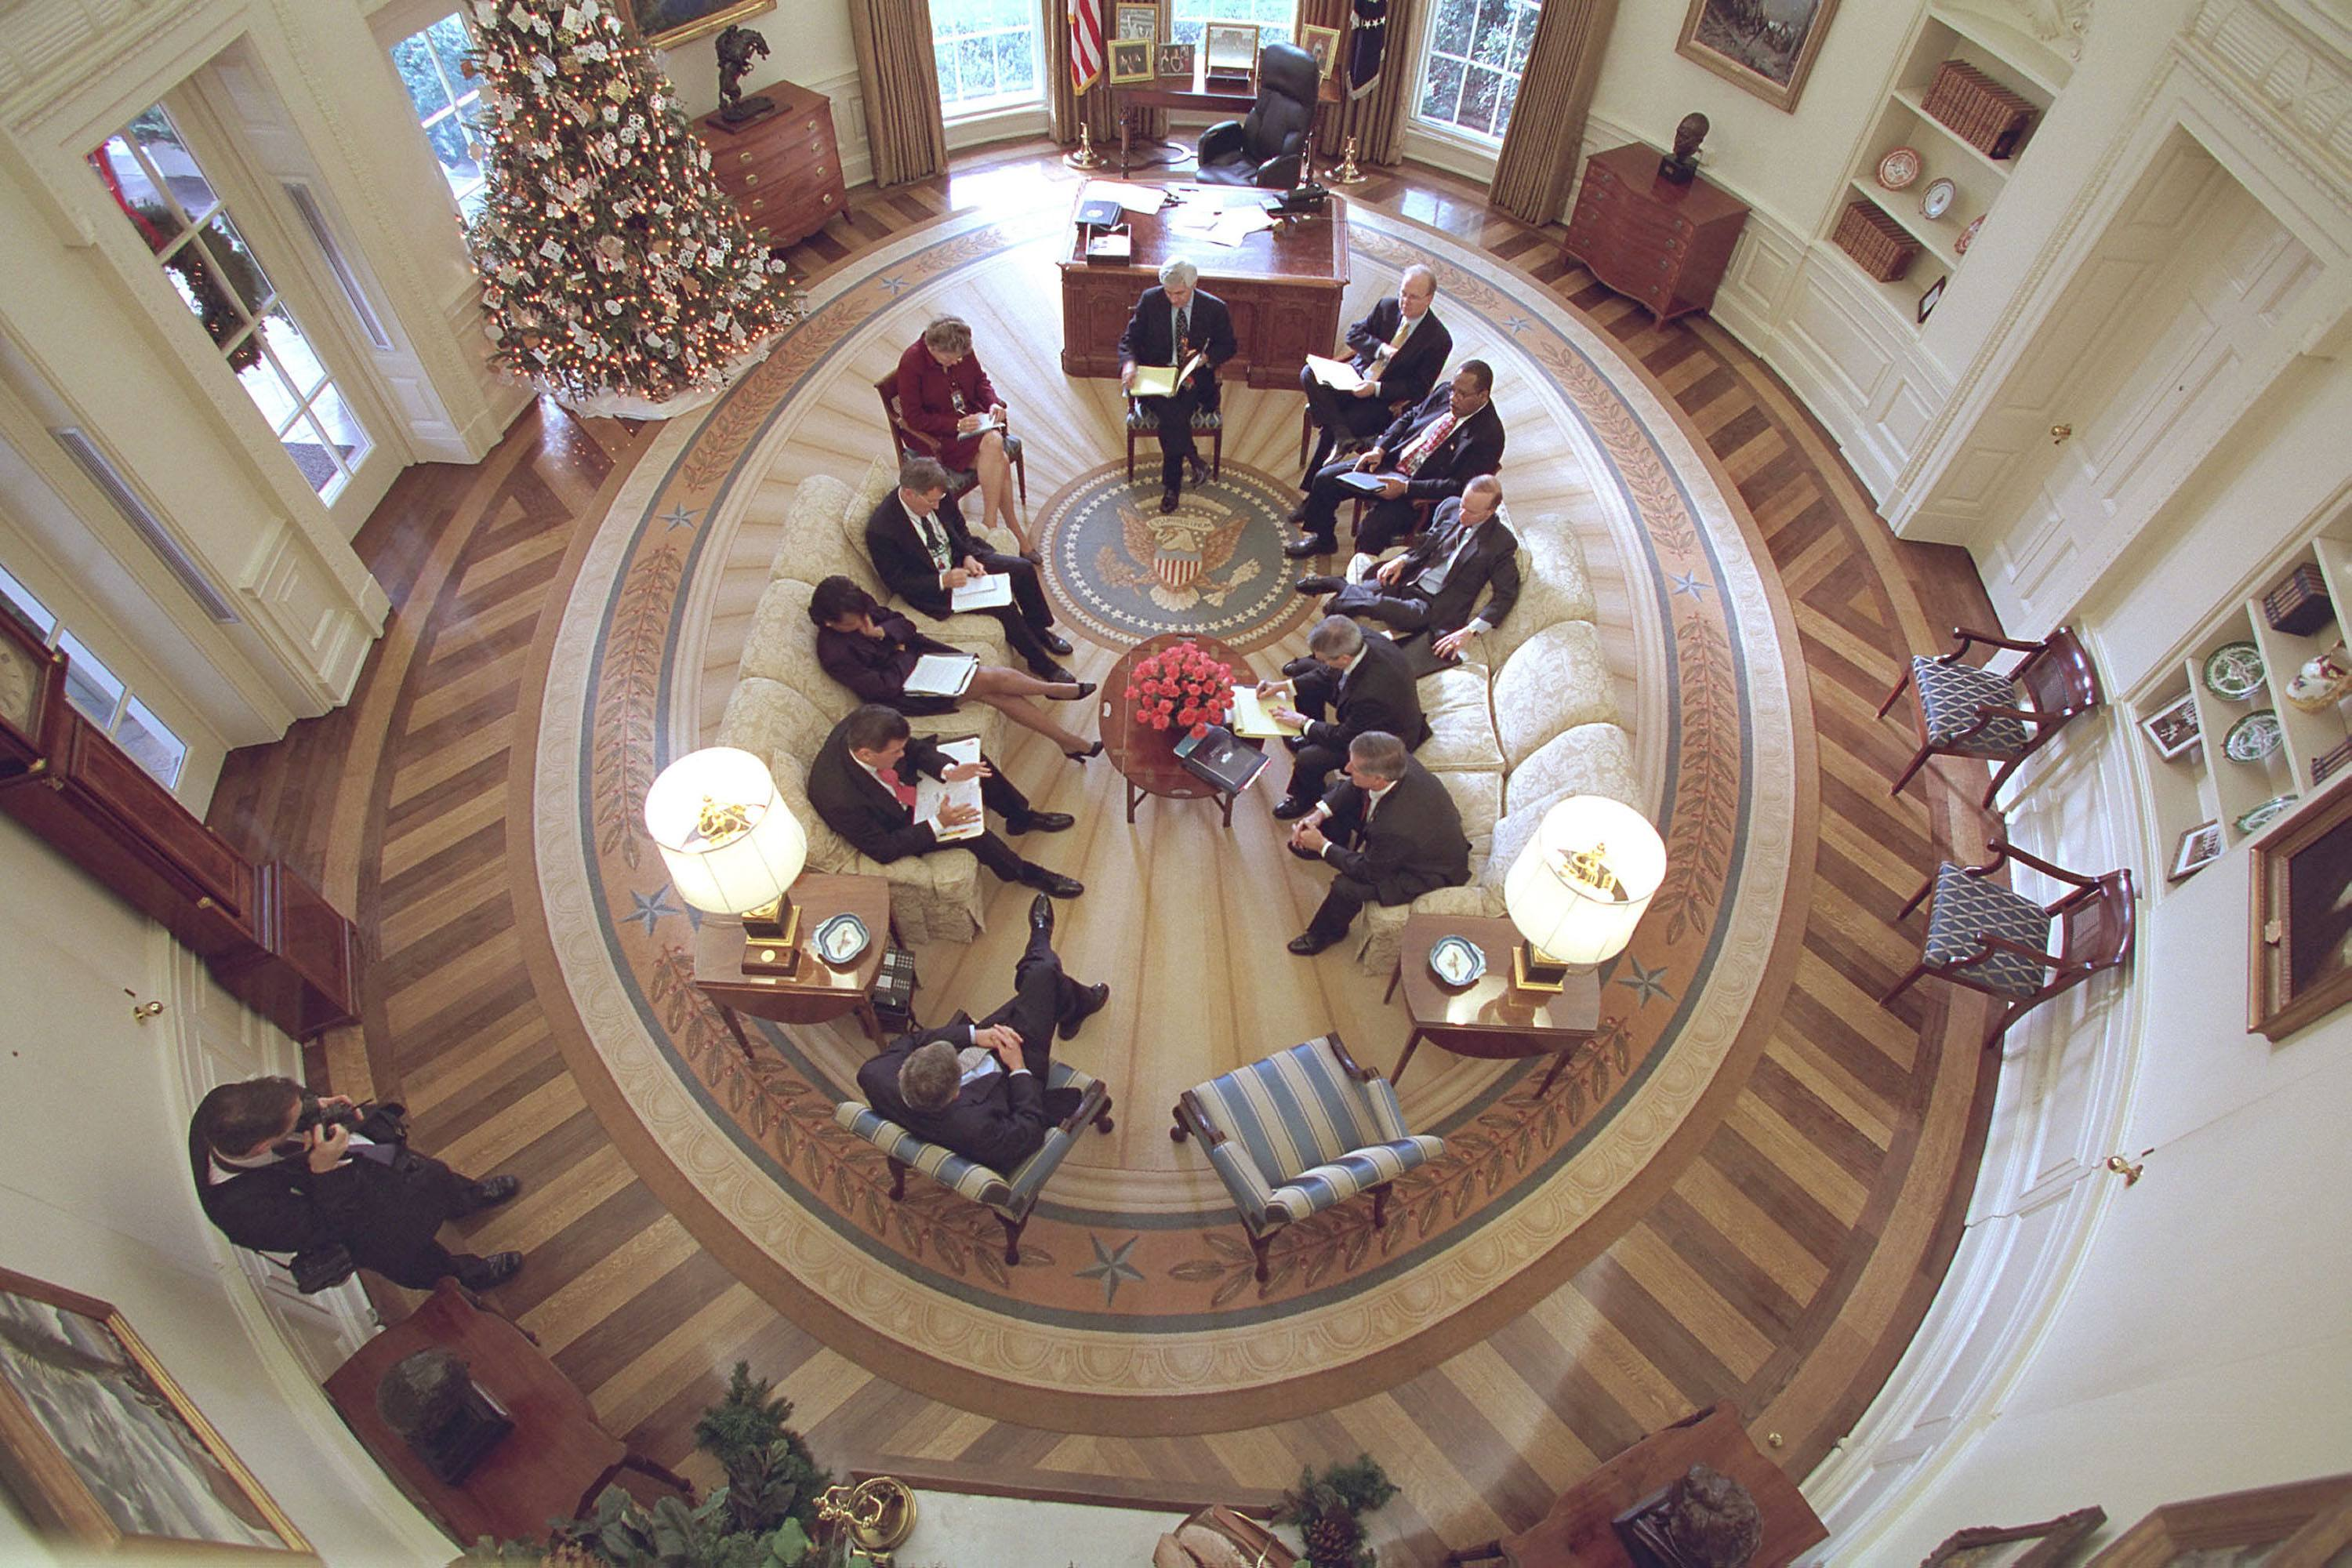 President Bush Hosts Meeting in Oval Office